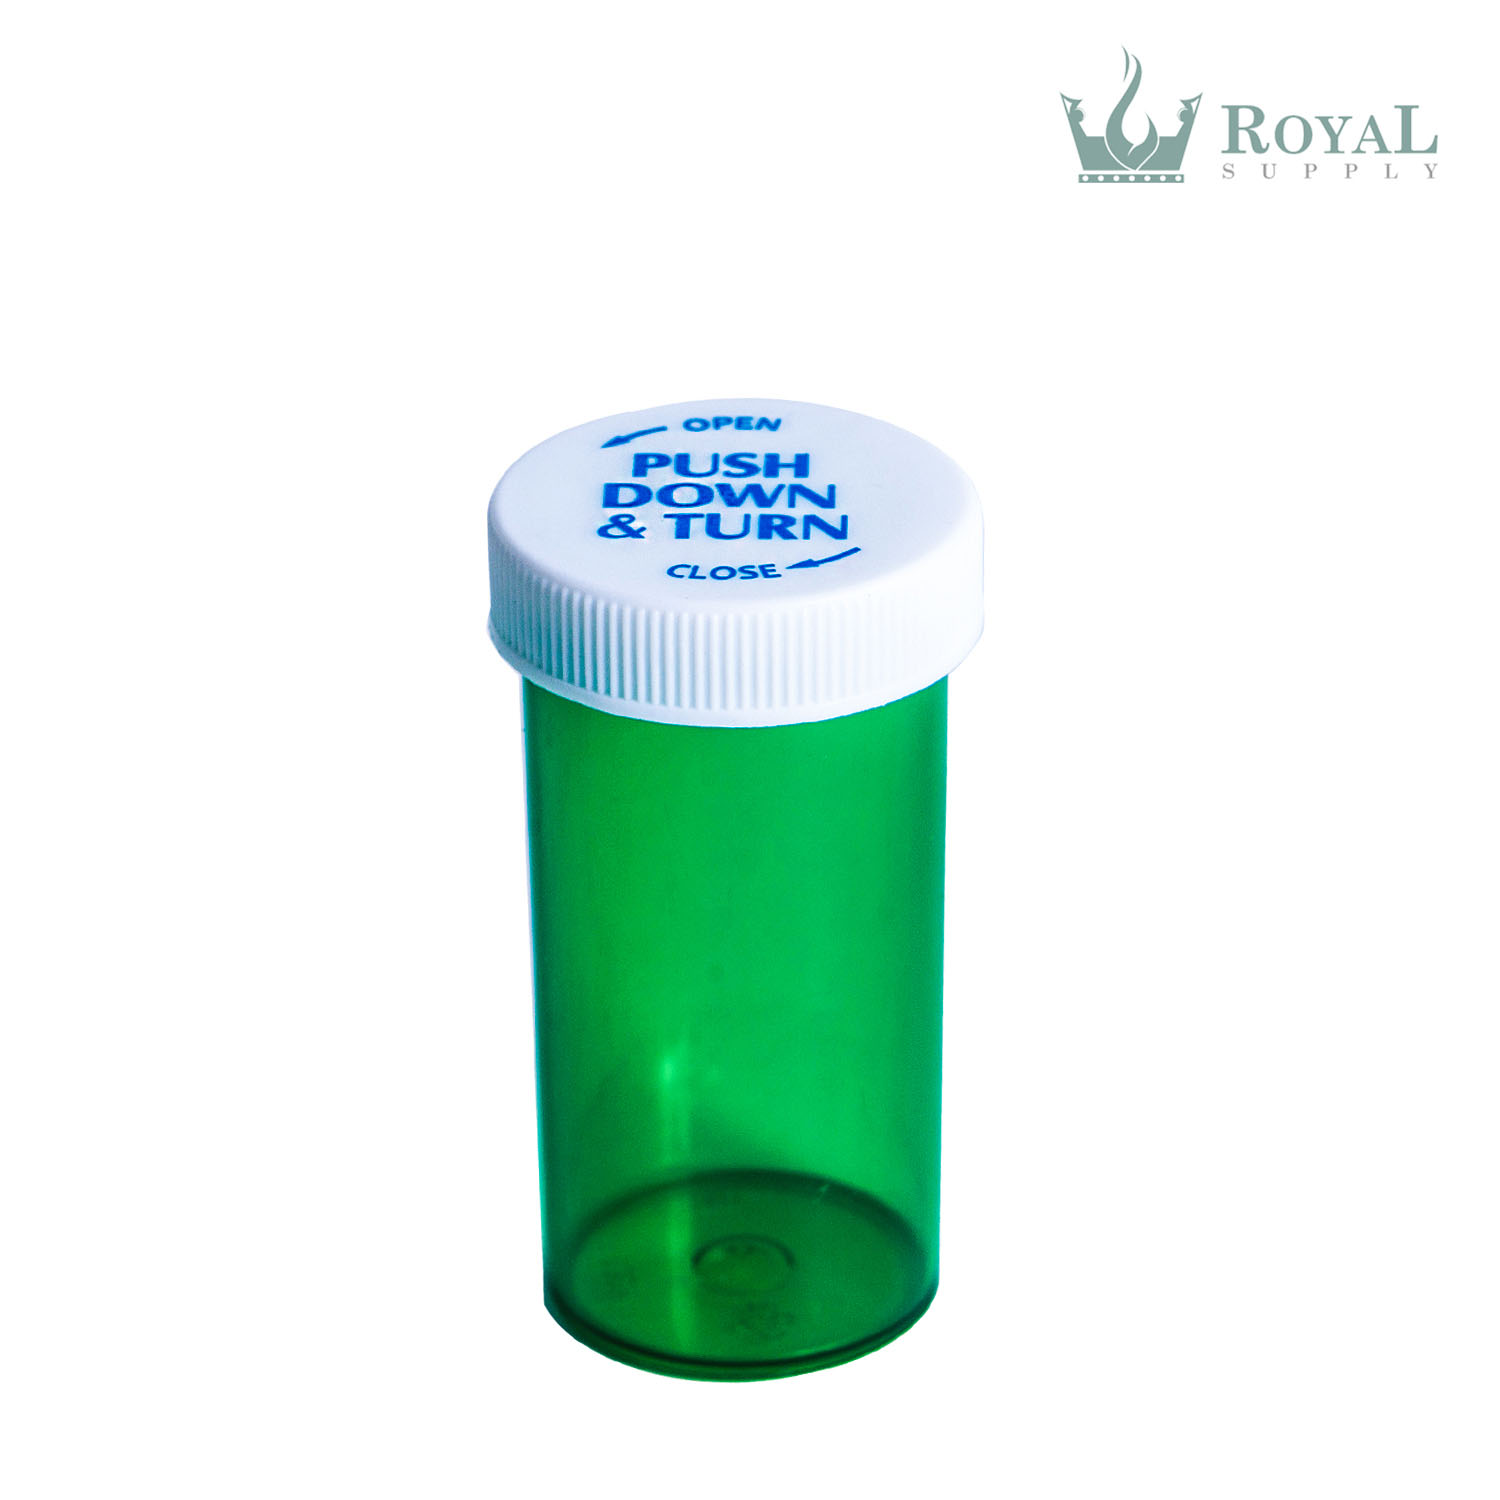 13 Dram High Quality Translucent Child Resistant Push and Turn Vials